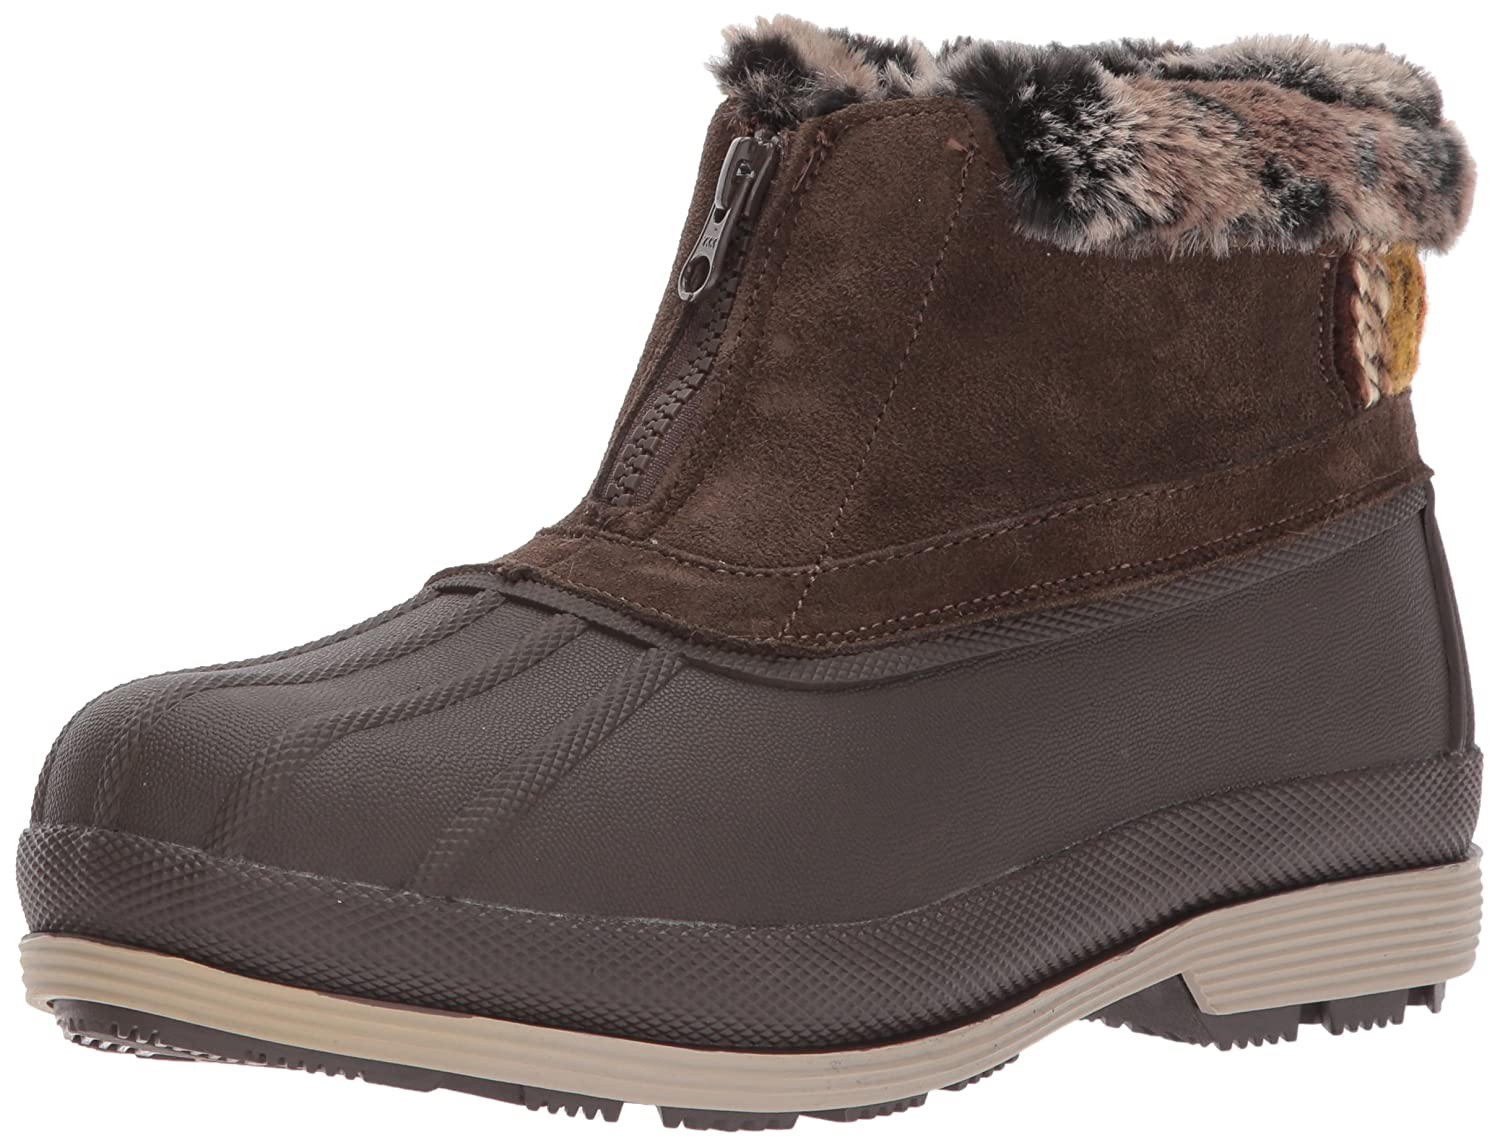 Propet Women's Lumi Ankle Zip Snow Boot B01NBF3UZD 9.5 2E US|Brown